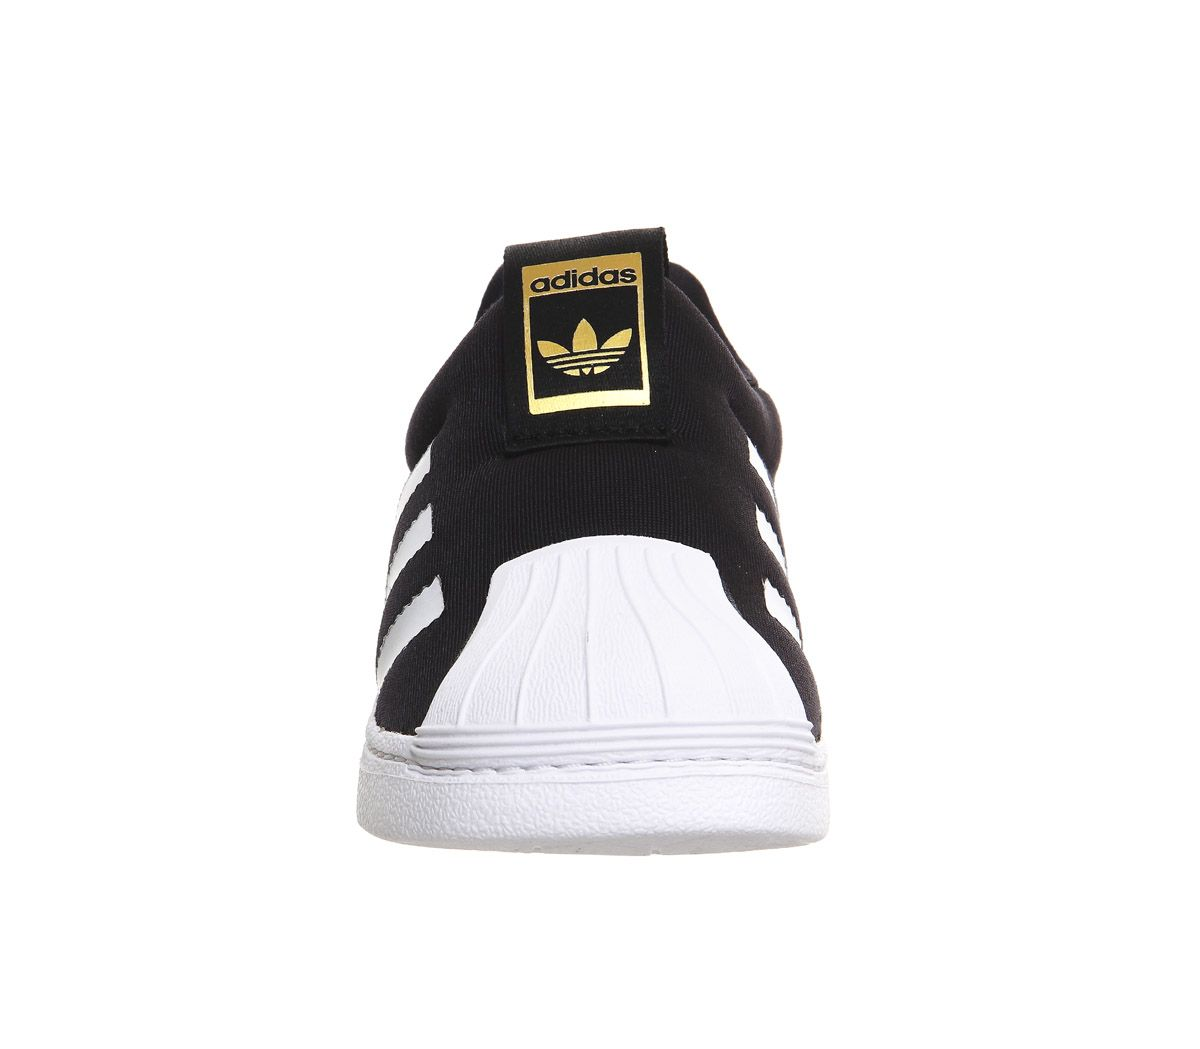 promo code 91500 ac75a Sentinel Kids Adidas Superstar 360 Inf 3-9 Core Black Kids